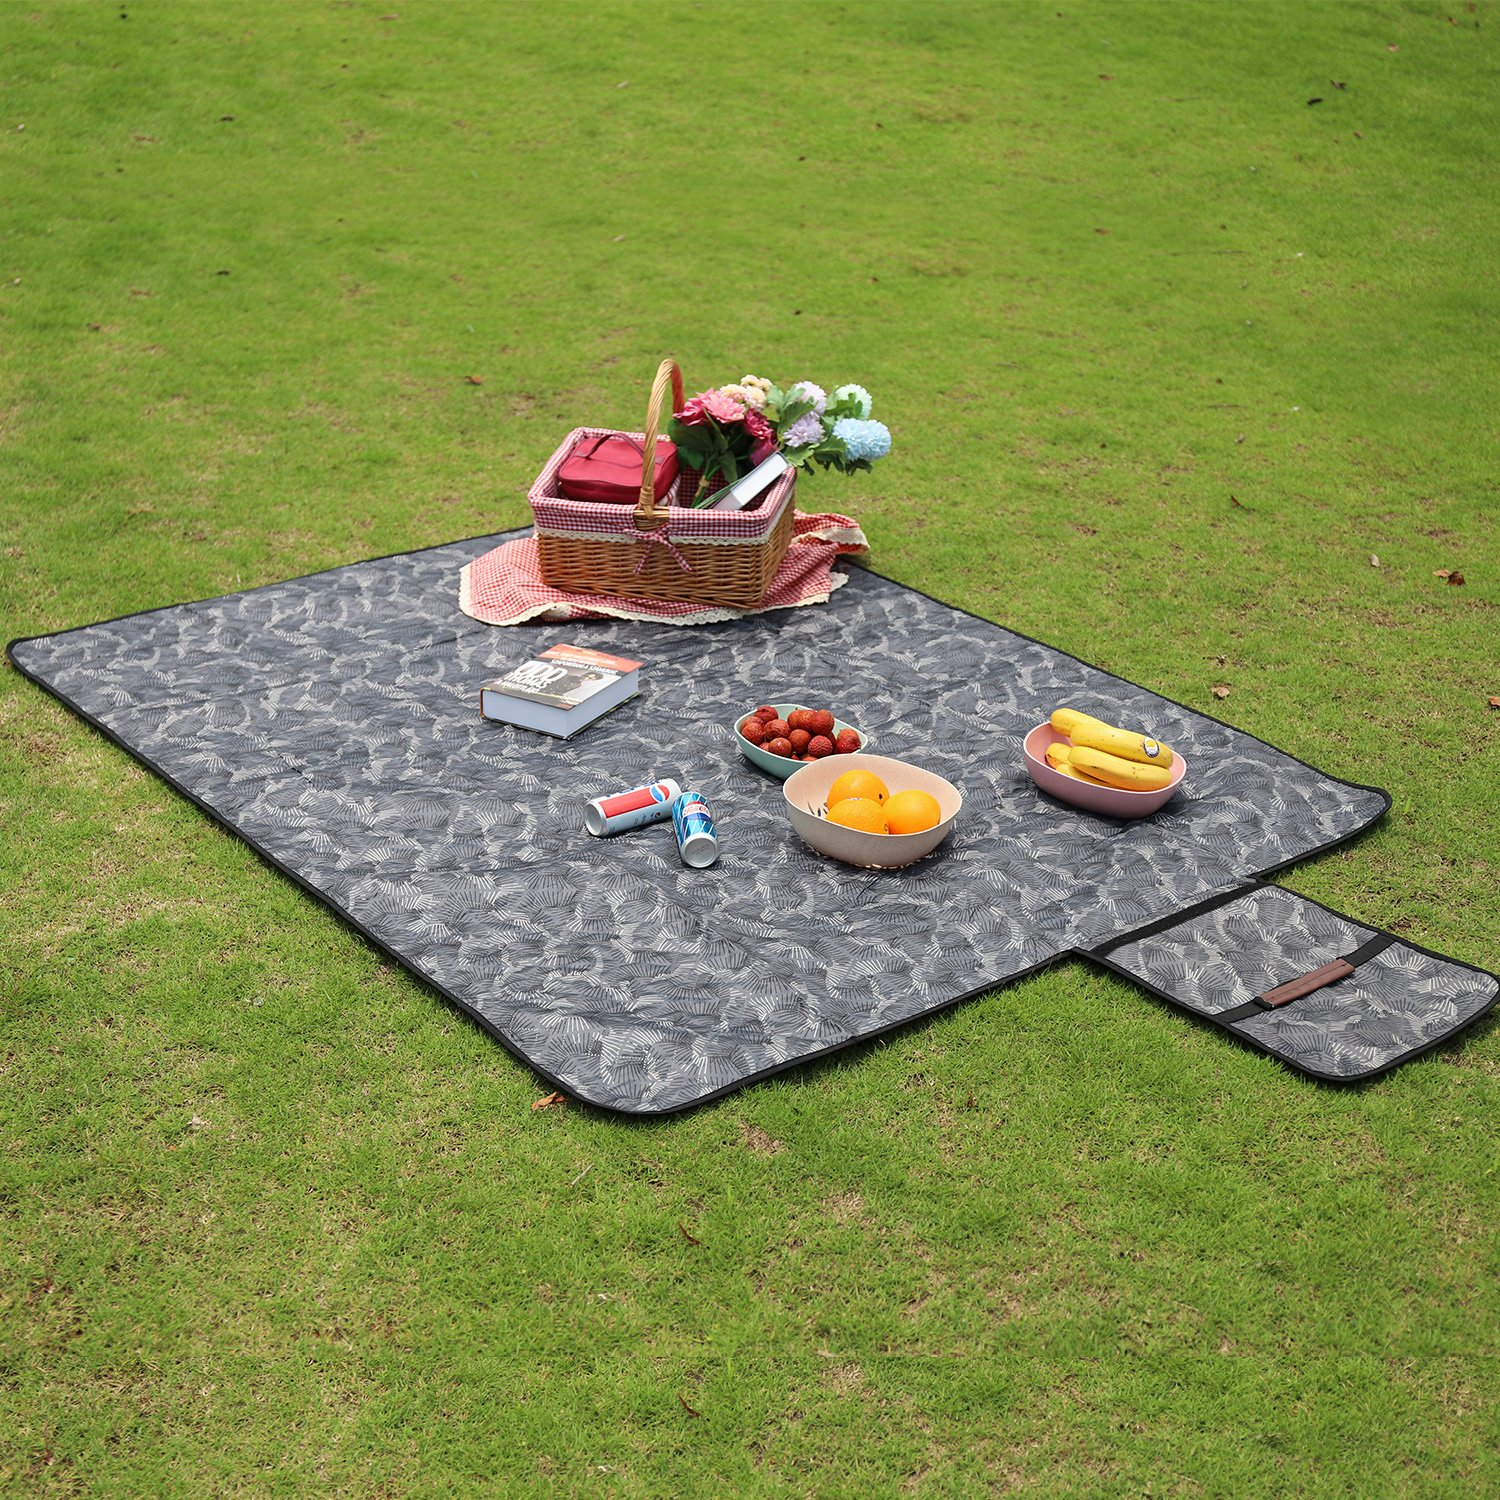 150D Polyester, Cotton and 210 D Oxford Camping Blanket Beach Mat Sand Proof Blanket Composed of Three Layers Sekey Machine Washable Outdoor Picnic Blanket Large Waterproof 67 x 55